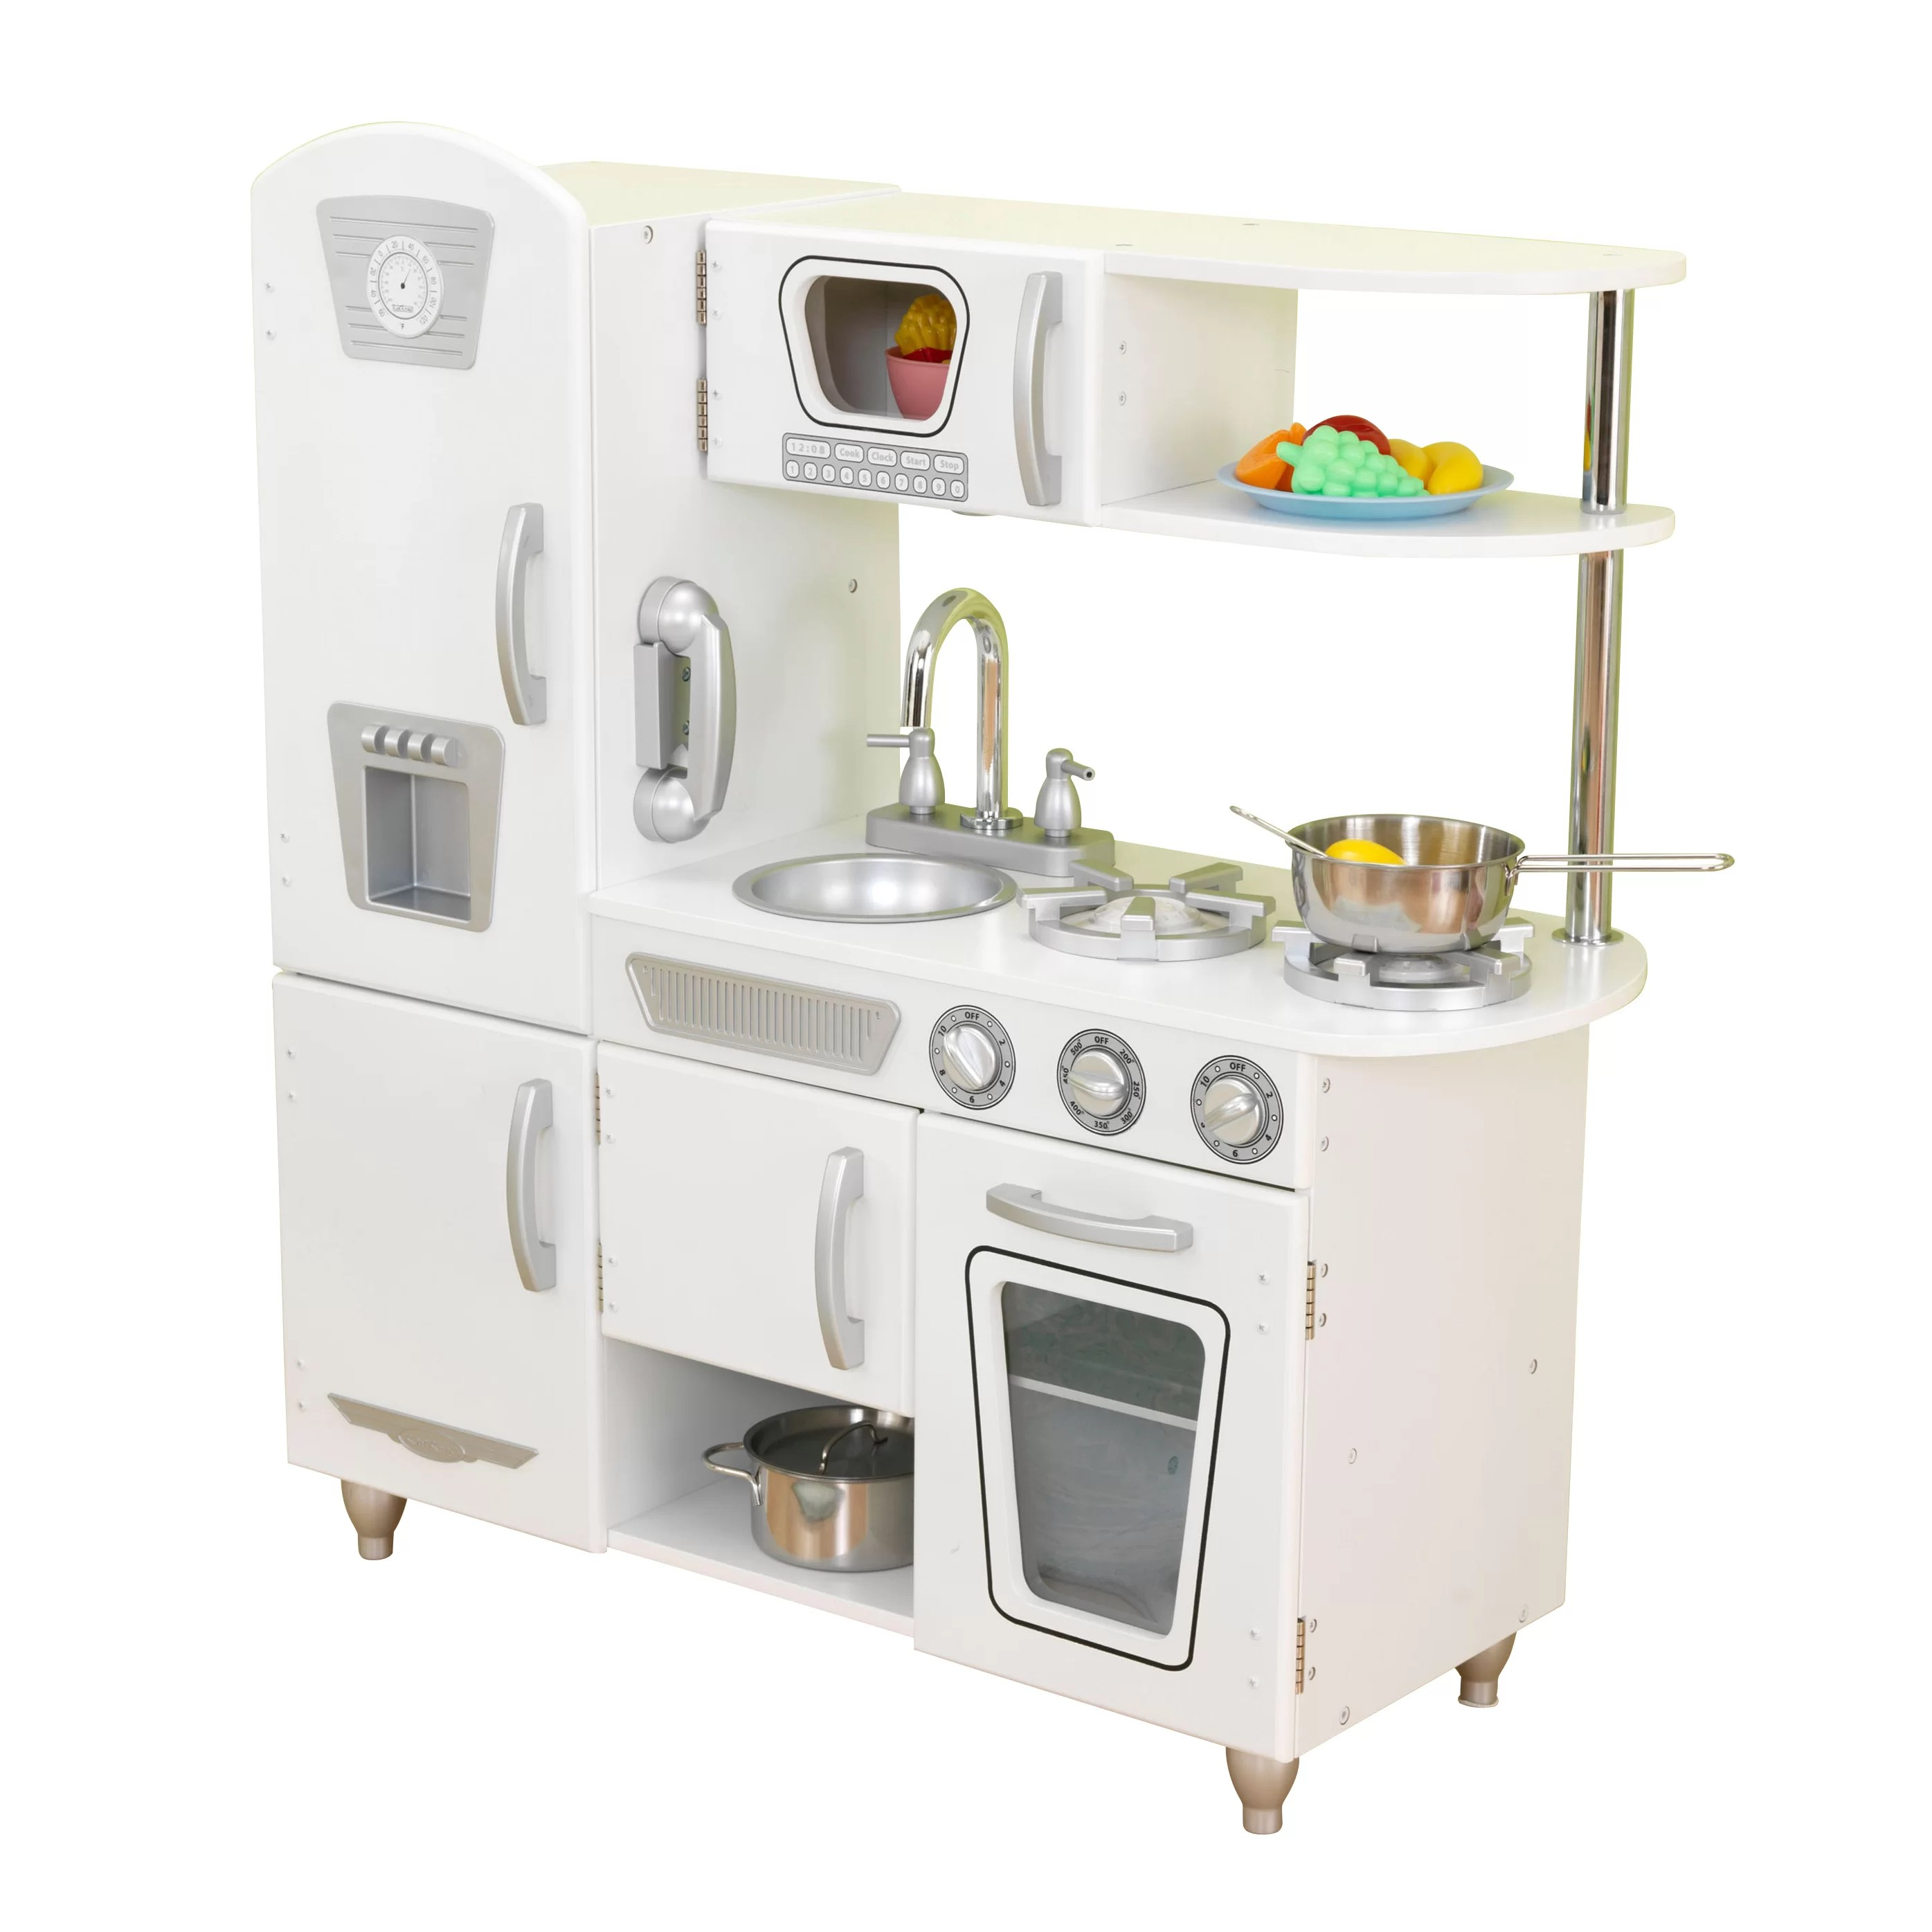 Kidkraft Vintage Keuken Kidkraft Vintage Kitchen And Reviews Wayfair